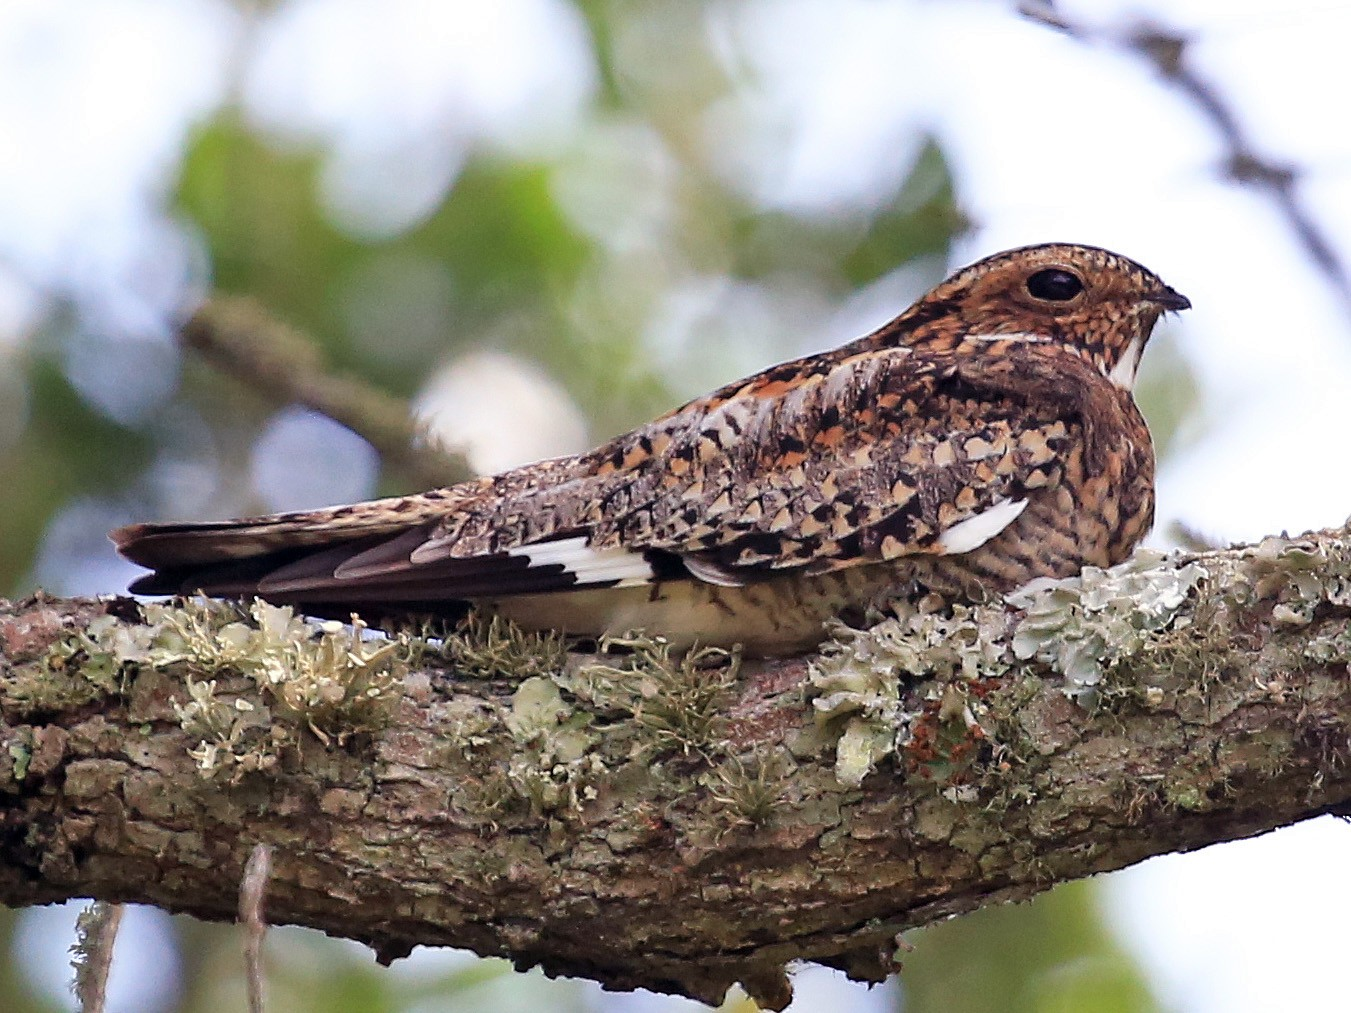 Common Nighthawk - Tim Lenz